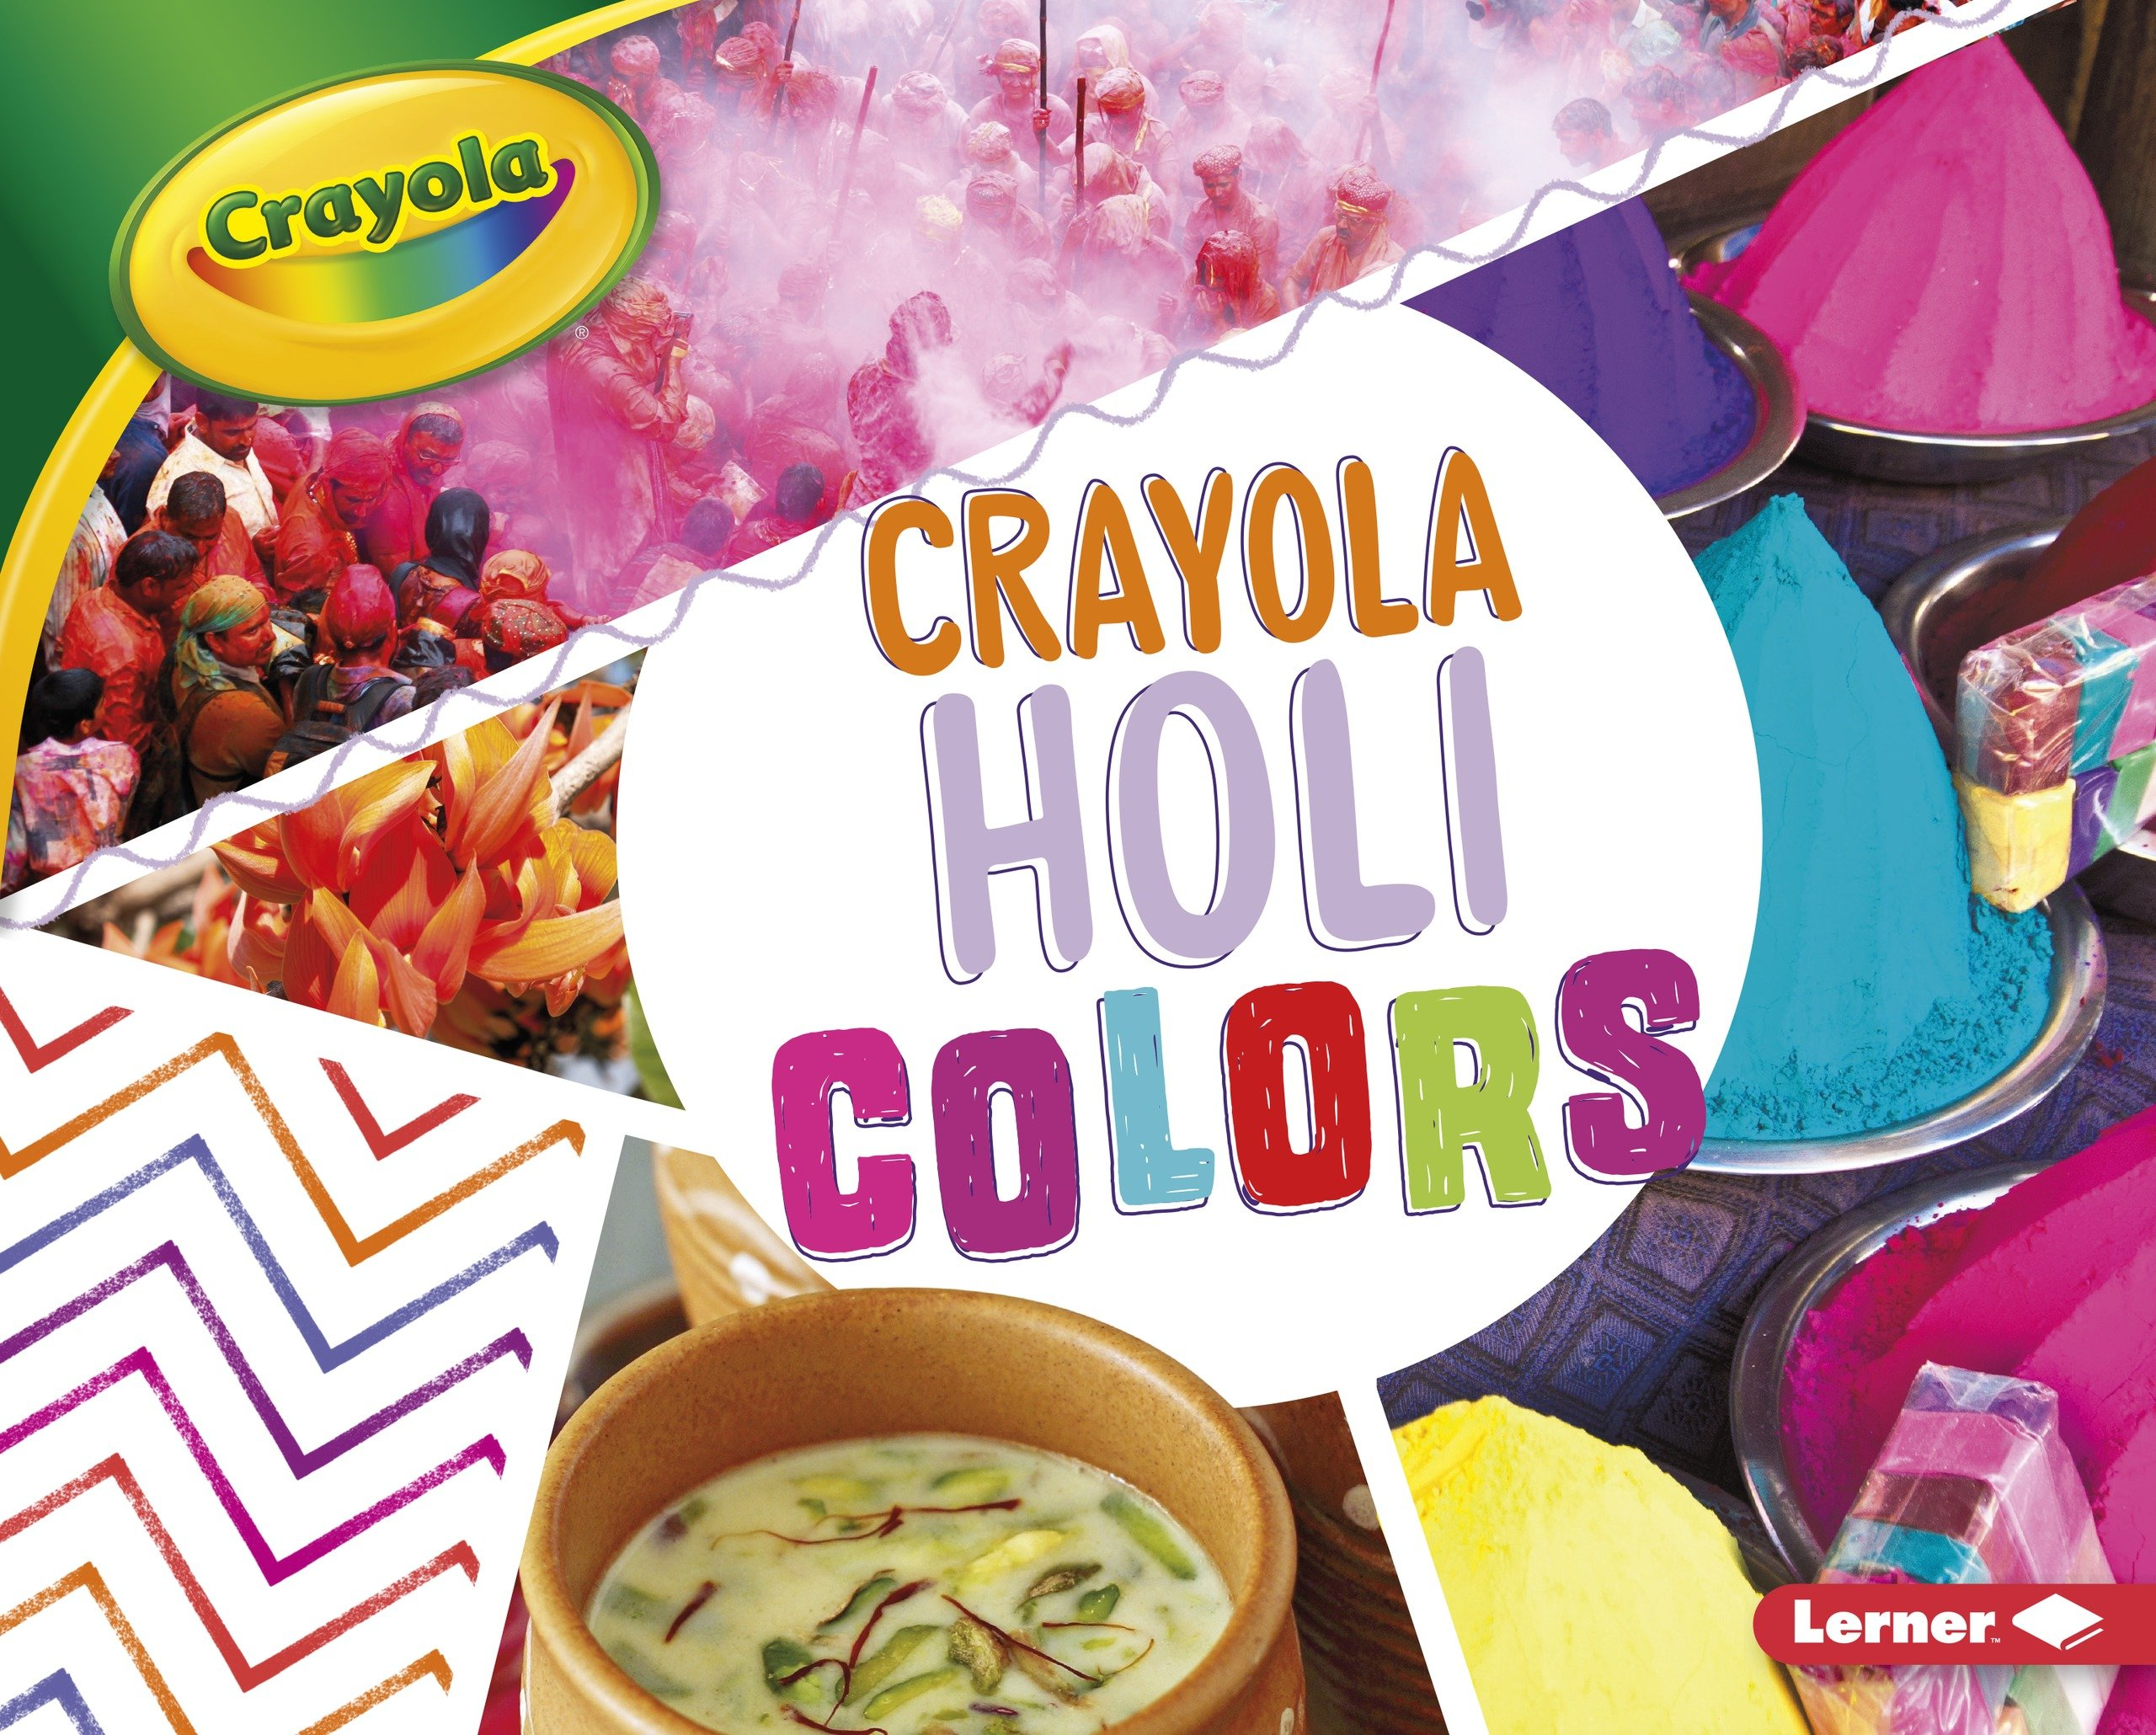 Crayola Holi Colors (Crayola Holiday Colors)